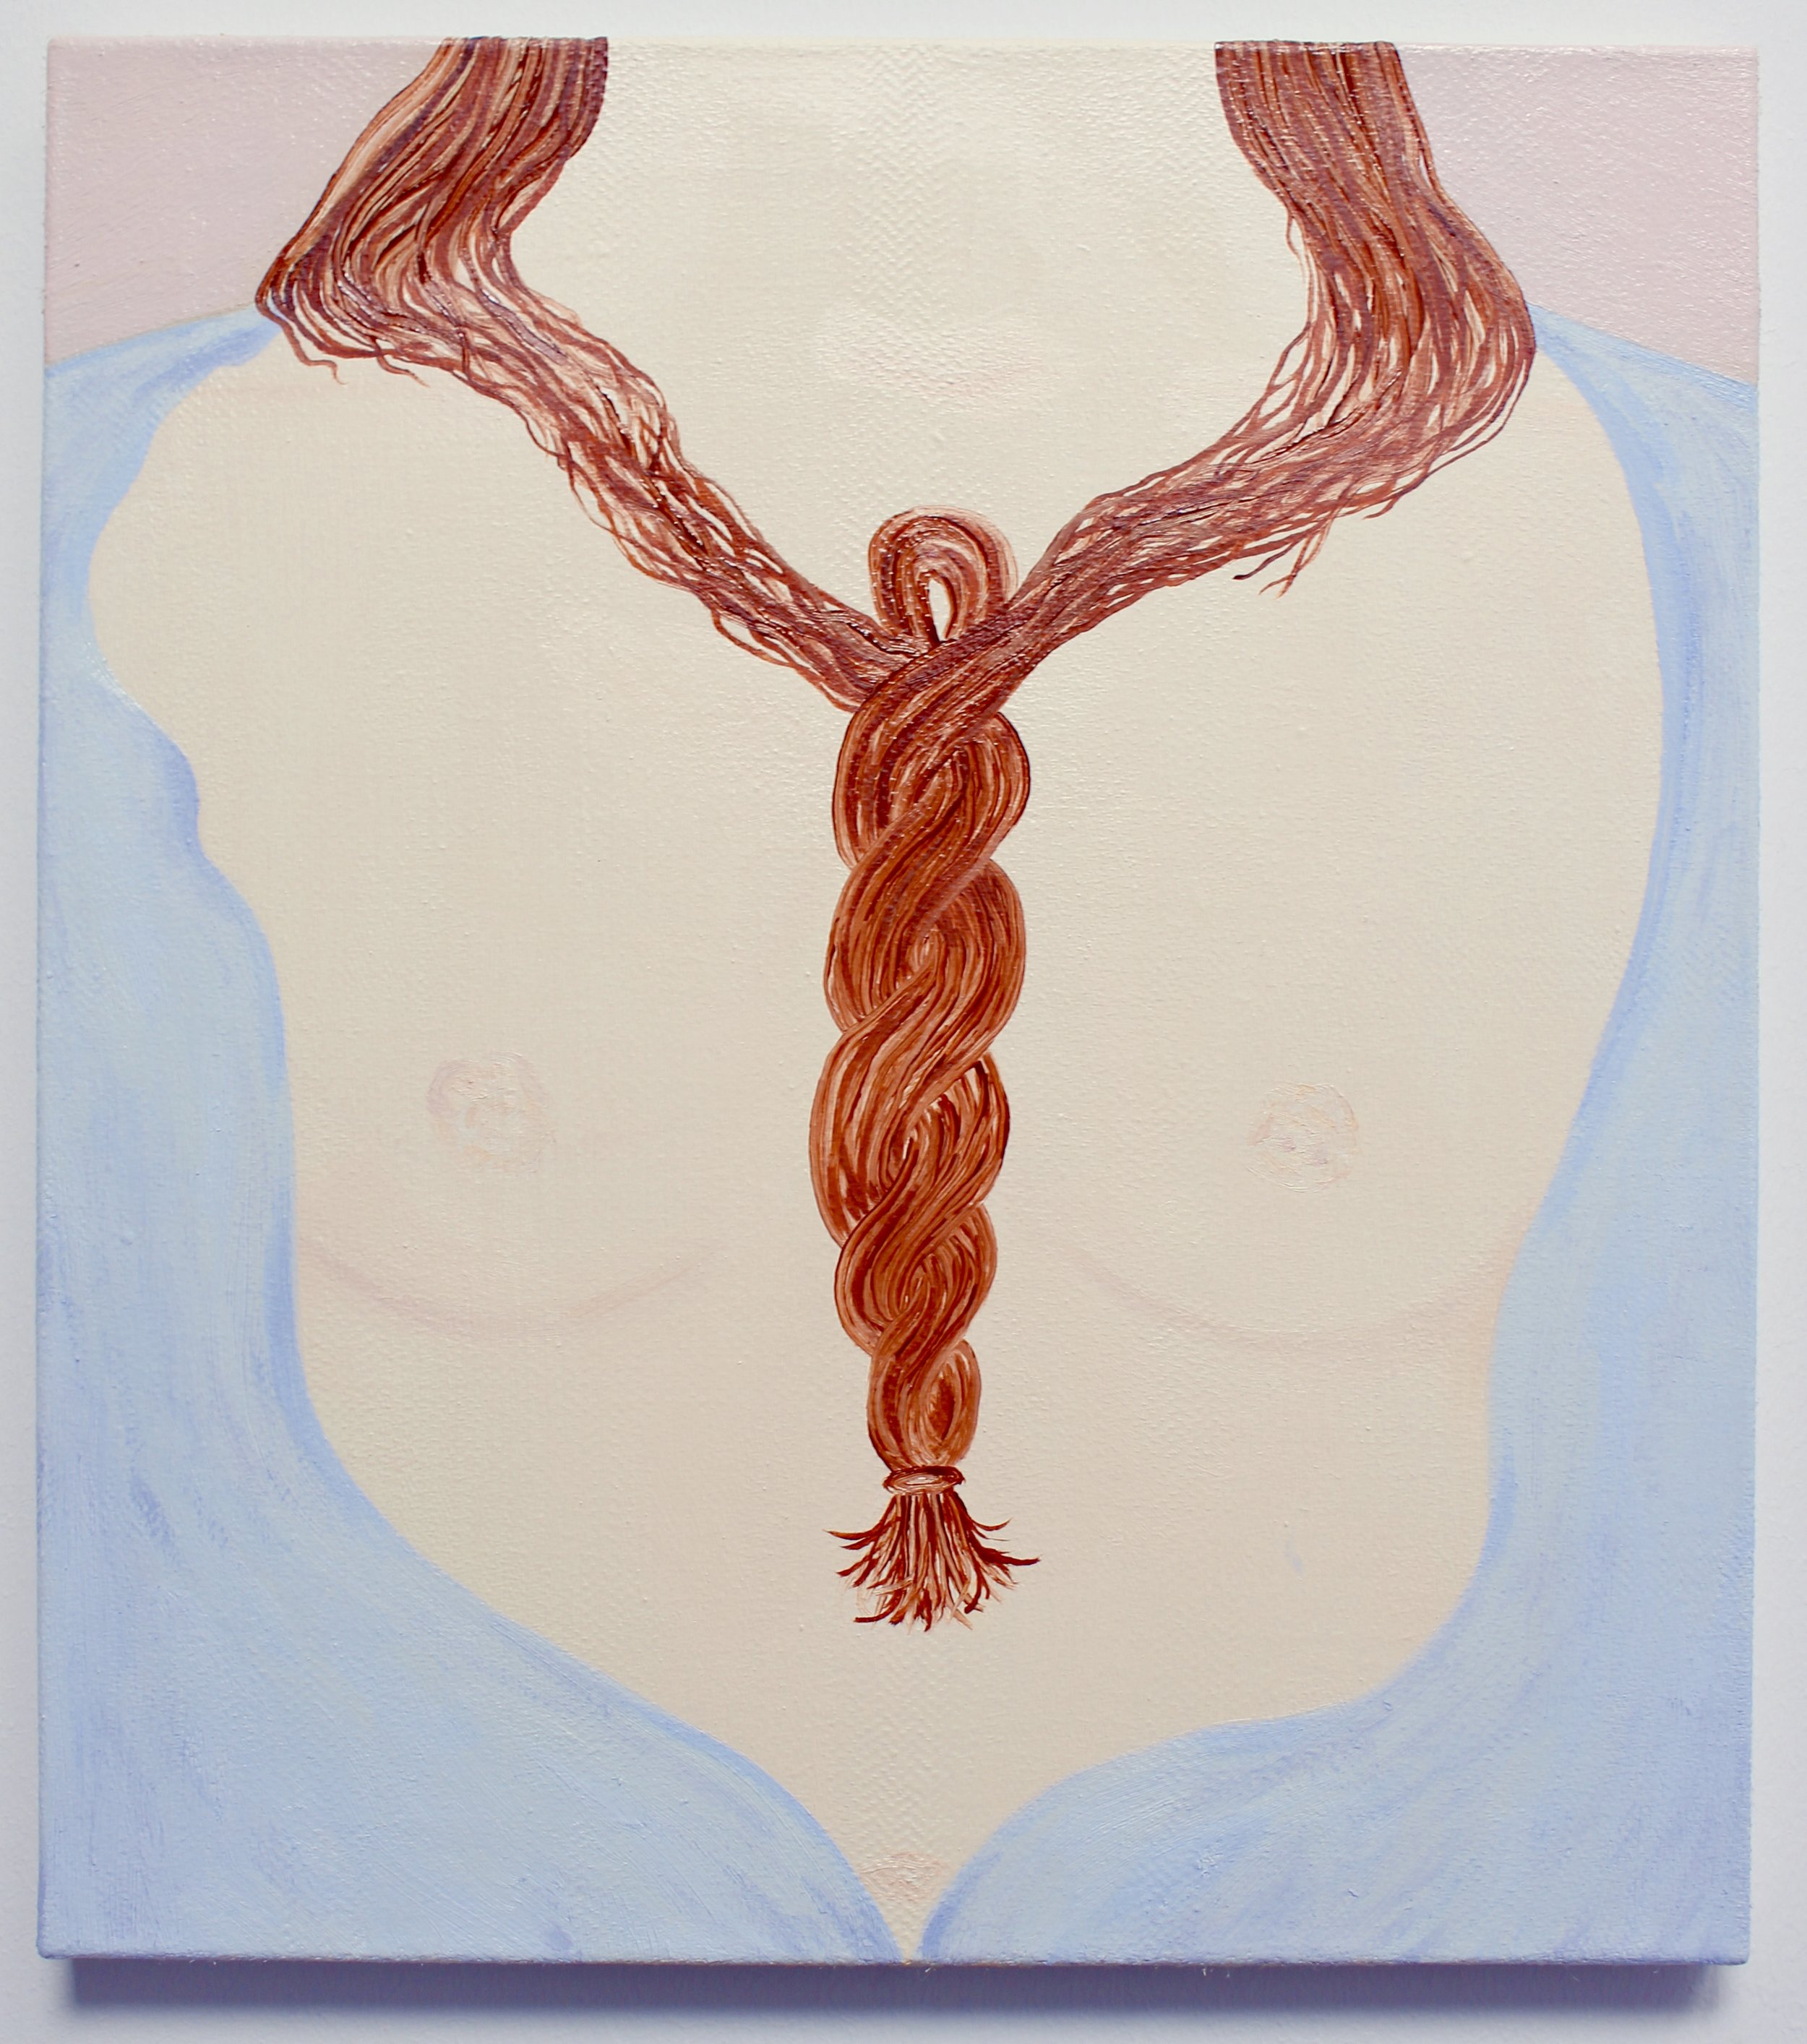 Wear your hair like a necklace,  oil on herringbone linen, 46 x 40cm, 2019